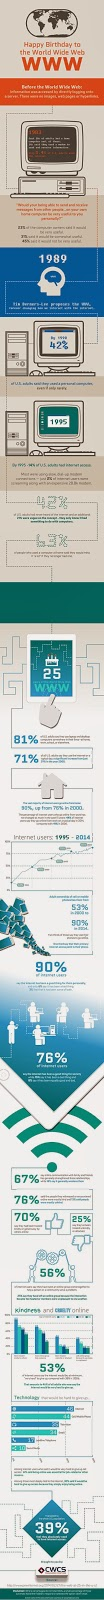 http://www.thedrum.com/news/2014/03/07/infographic-celebrating-25-years-world-wide-web